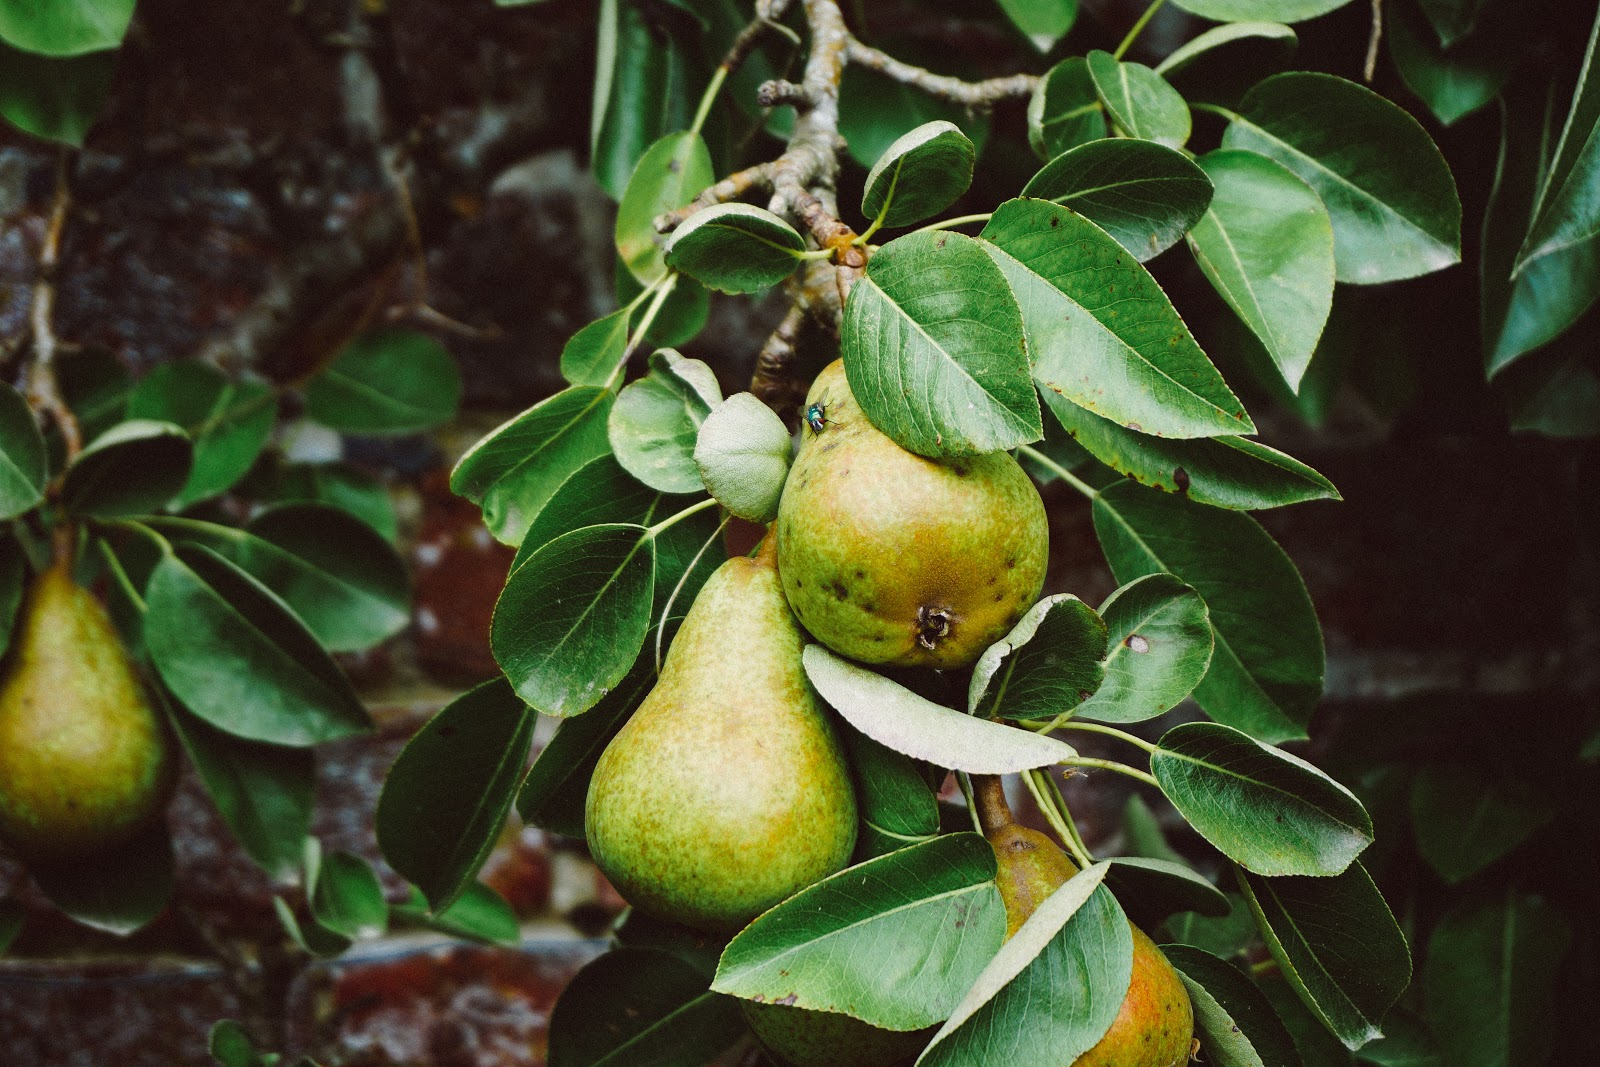 Pear tree fruiting